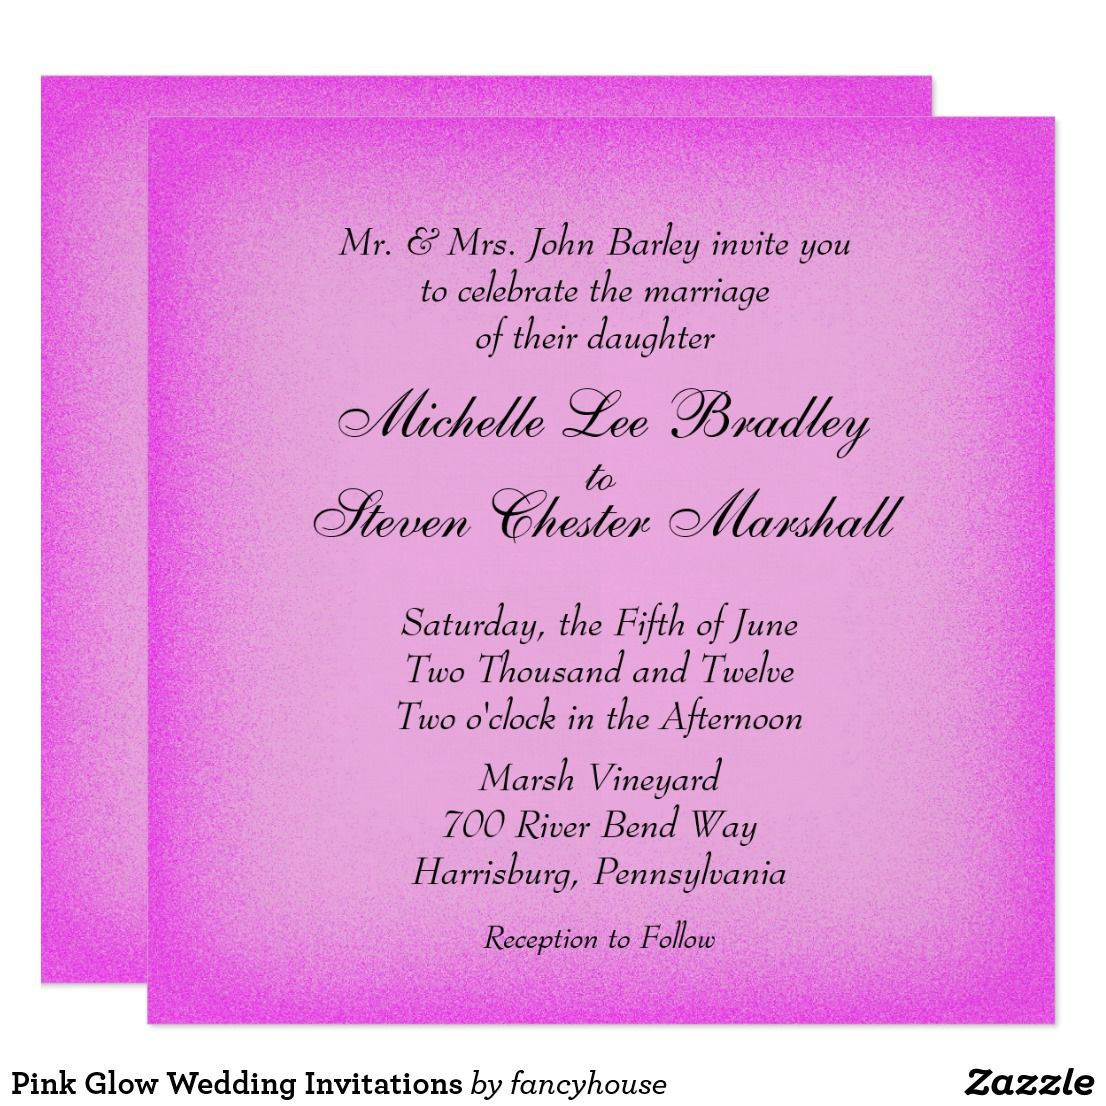 Pink Glow Wedding Invitations 40 Off Leatherwooddesign Pink